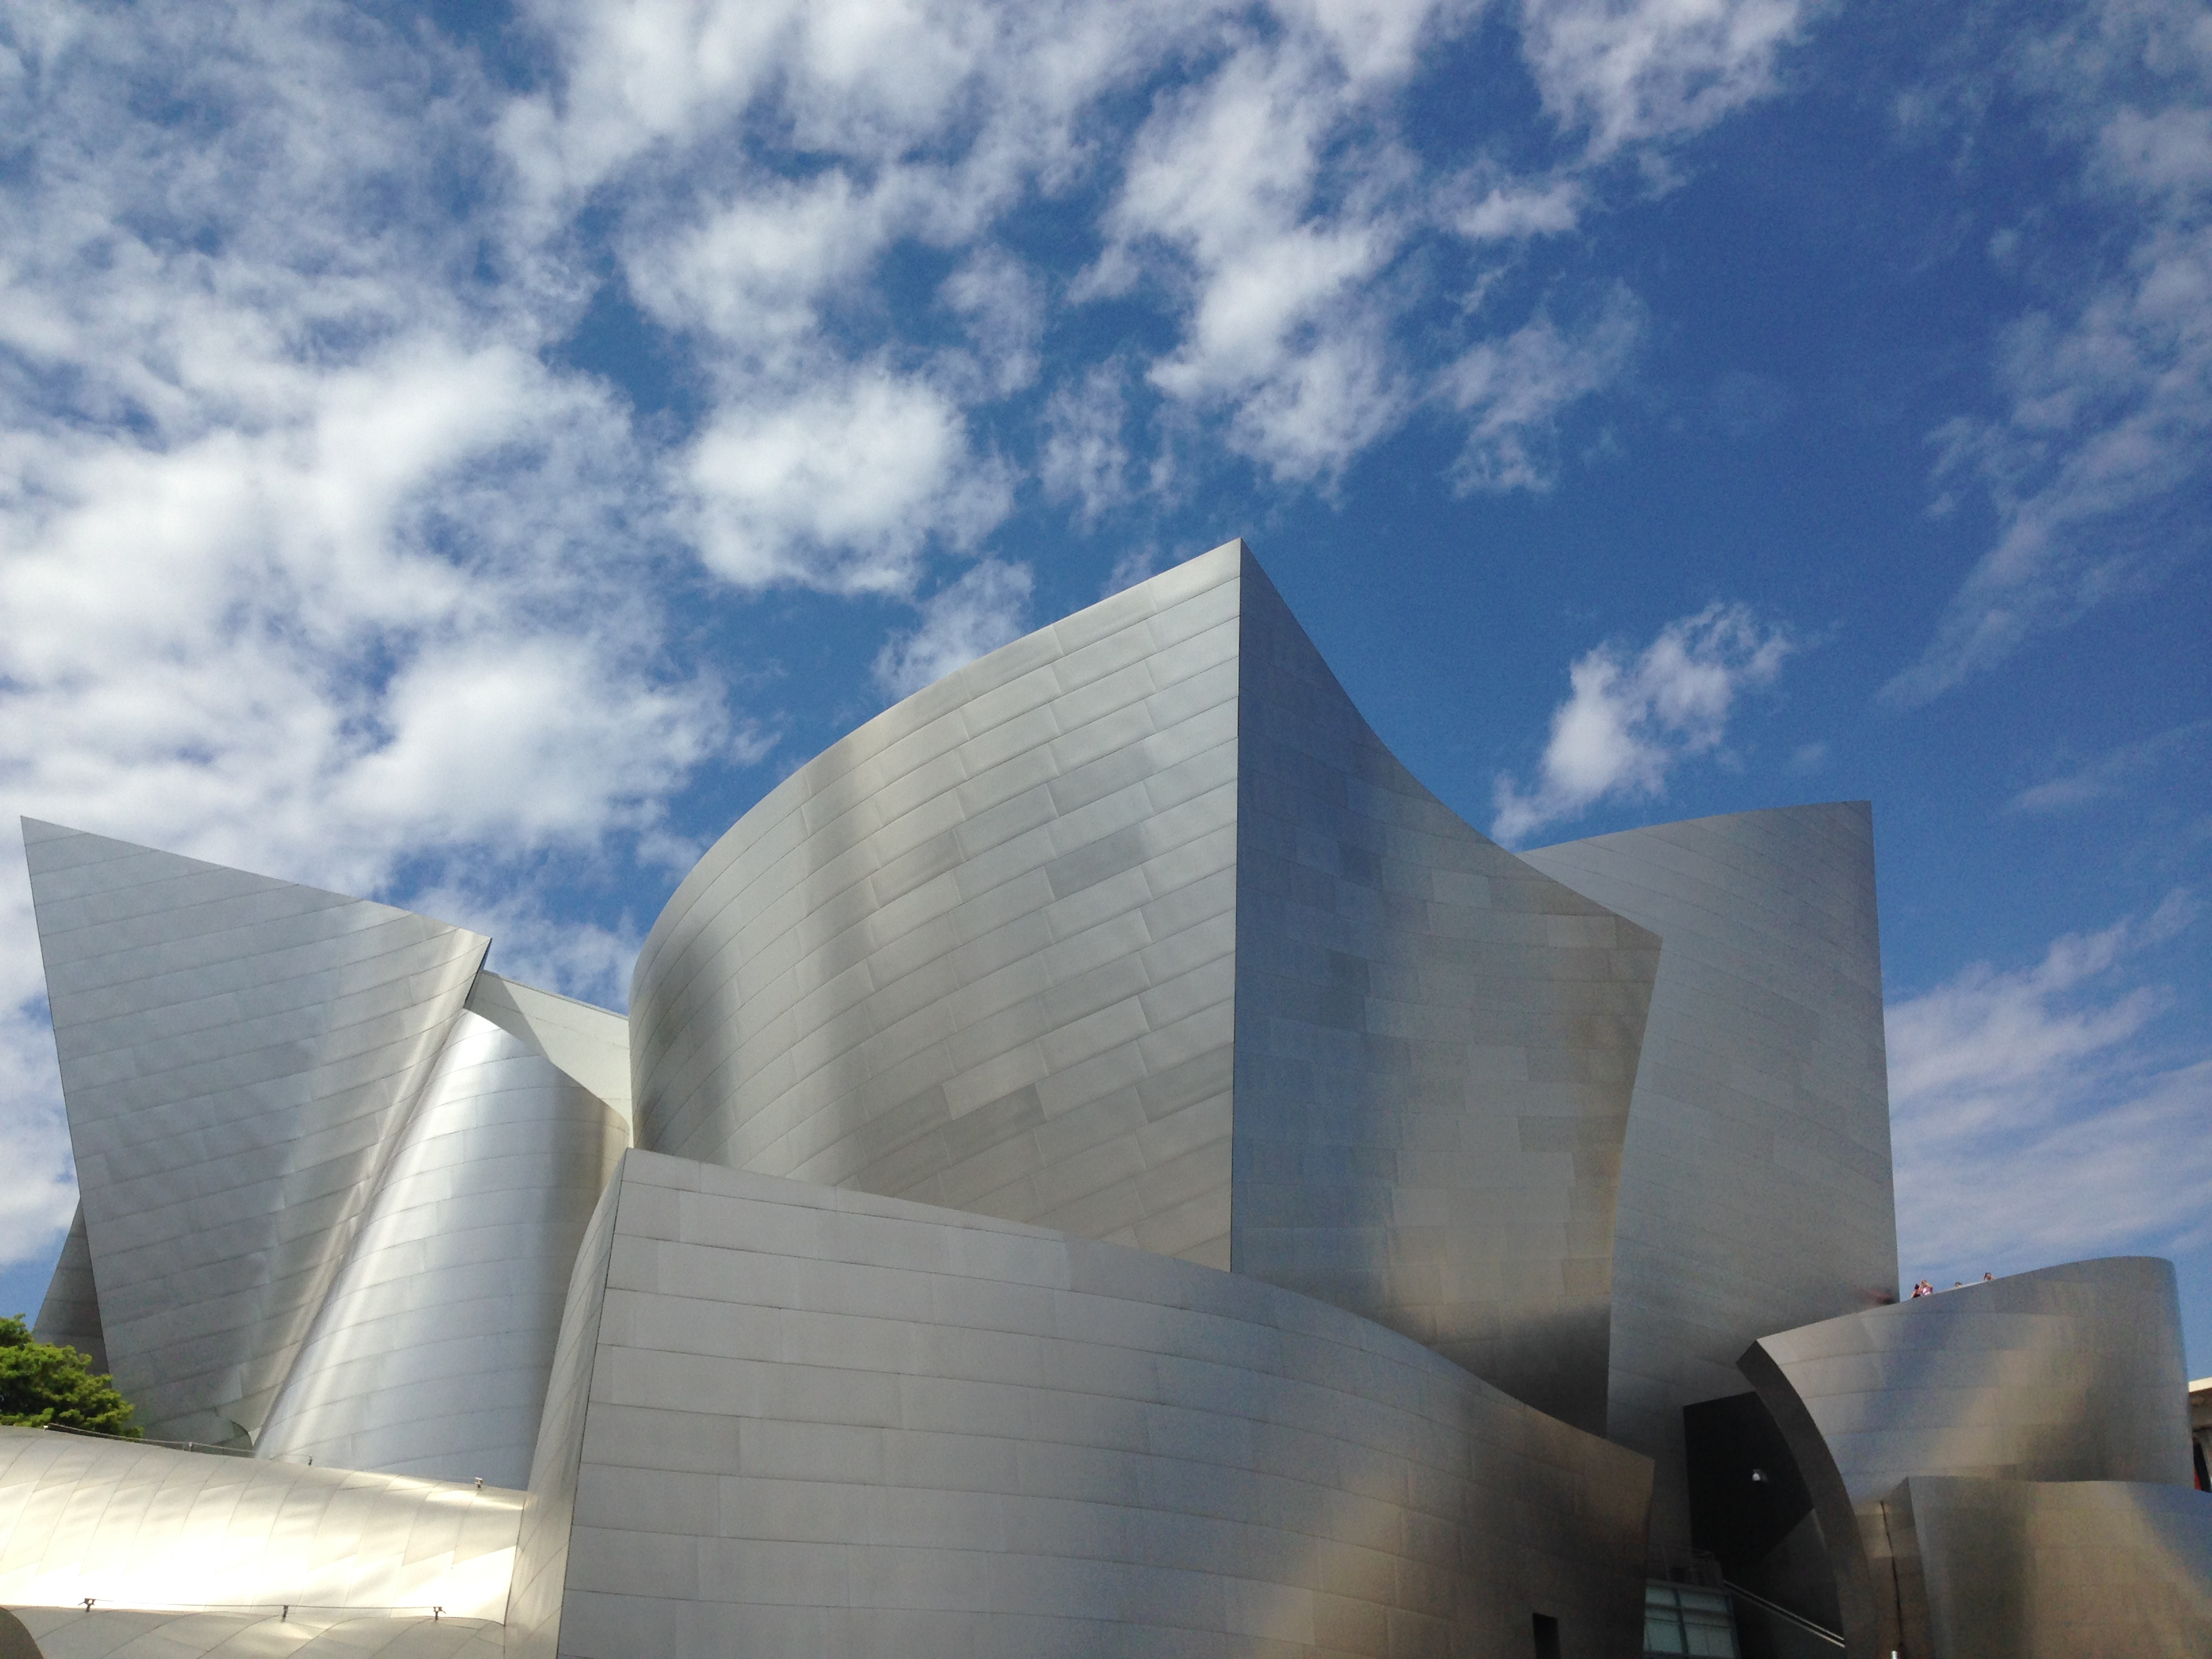 10 Most Famous Architecture Buildings 10 frank gehry buildings to see in l.a. | the getty iris